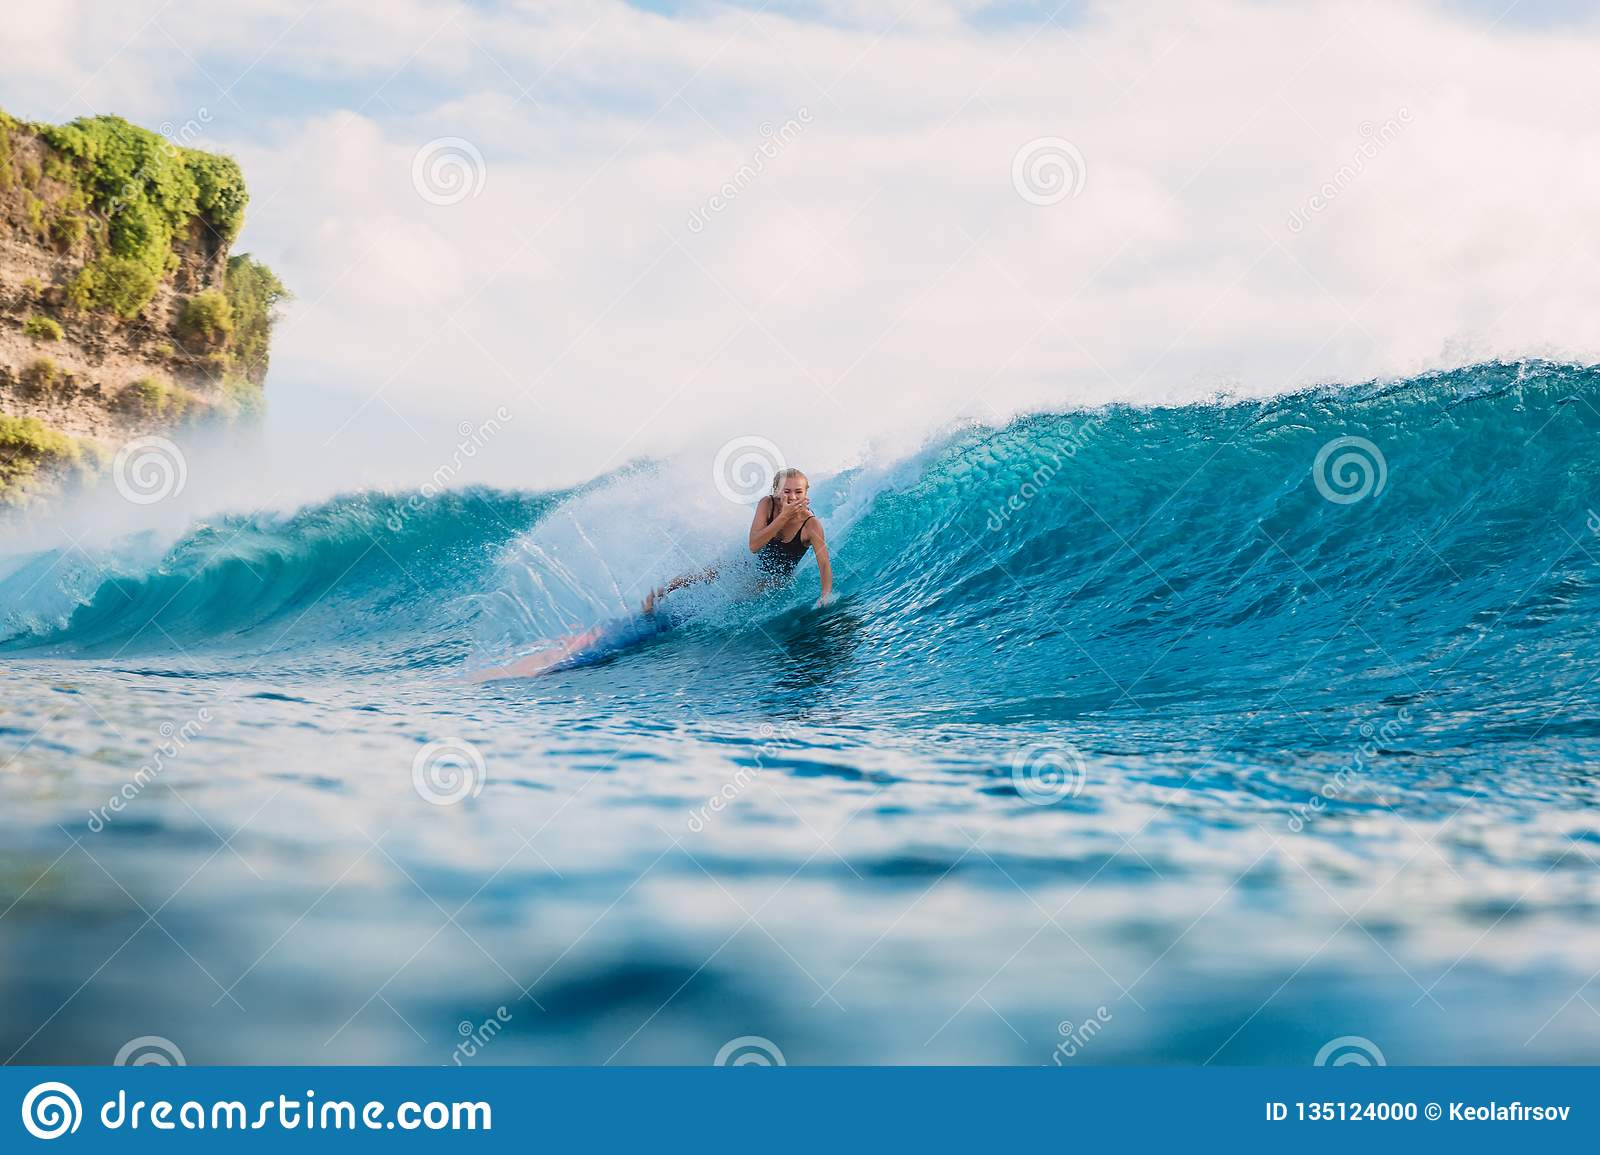 Surf Girl On Surfboard Wipeout Of Surfer Woman From Surfboard On